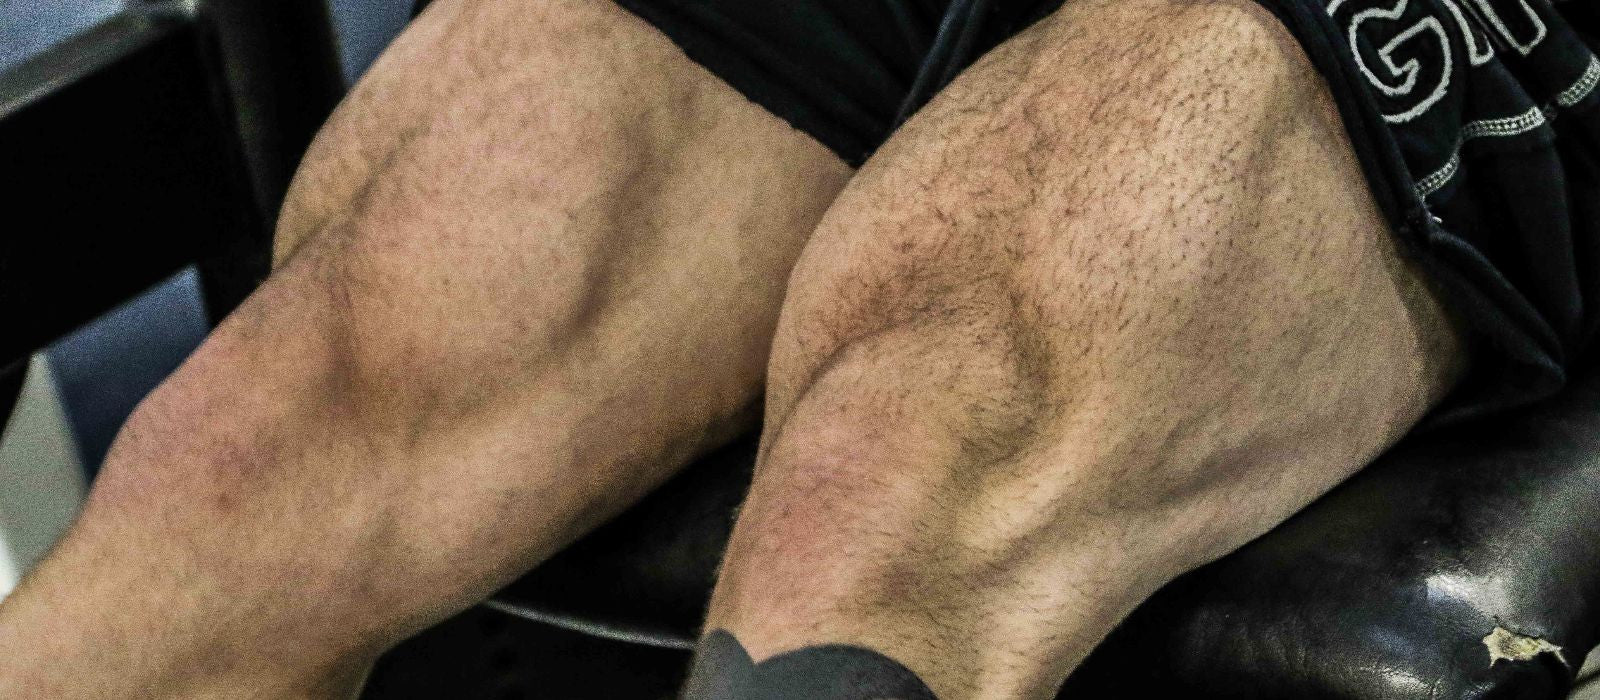 Kris Gethin Smashing Legs After the 2015 Mr. Olympia